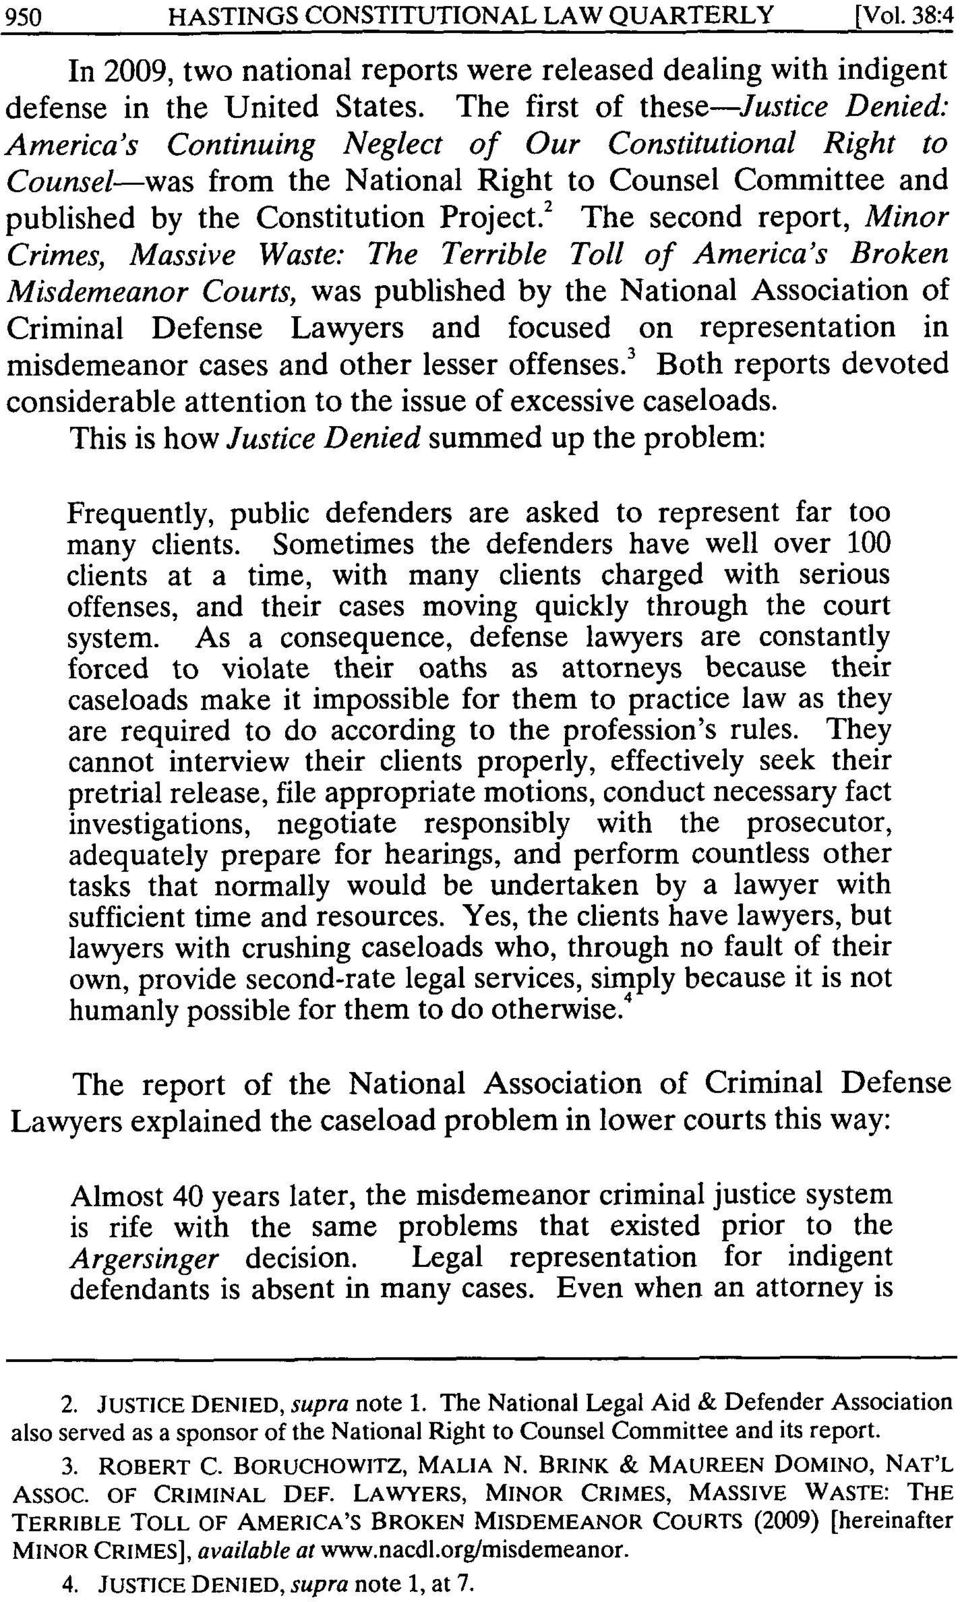 2 The second report, Minor Crimes, Massive Waste: The Terrible Toll of America's Broken Misdemeanor Courts, was published by the National Association of Criminal Defense Lawyers and focused on